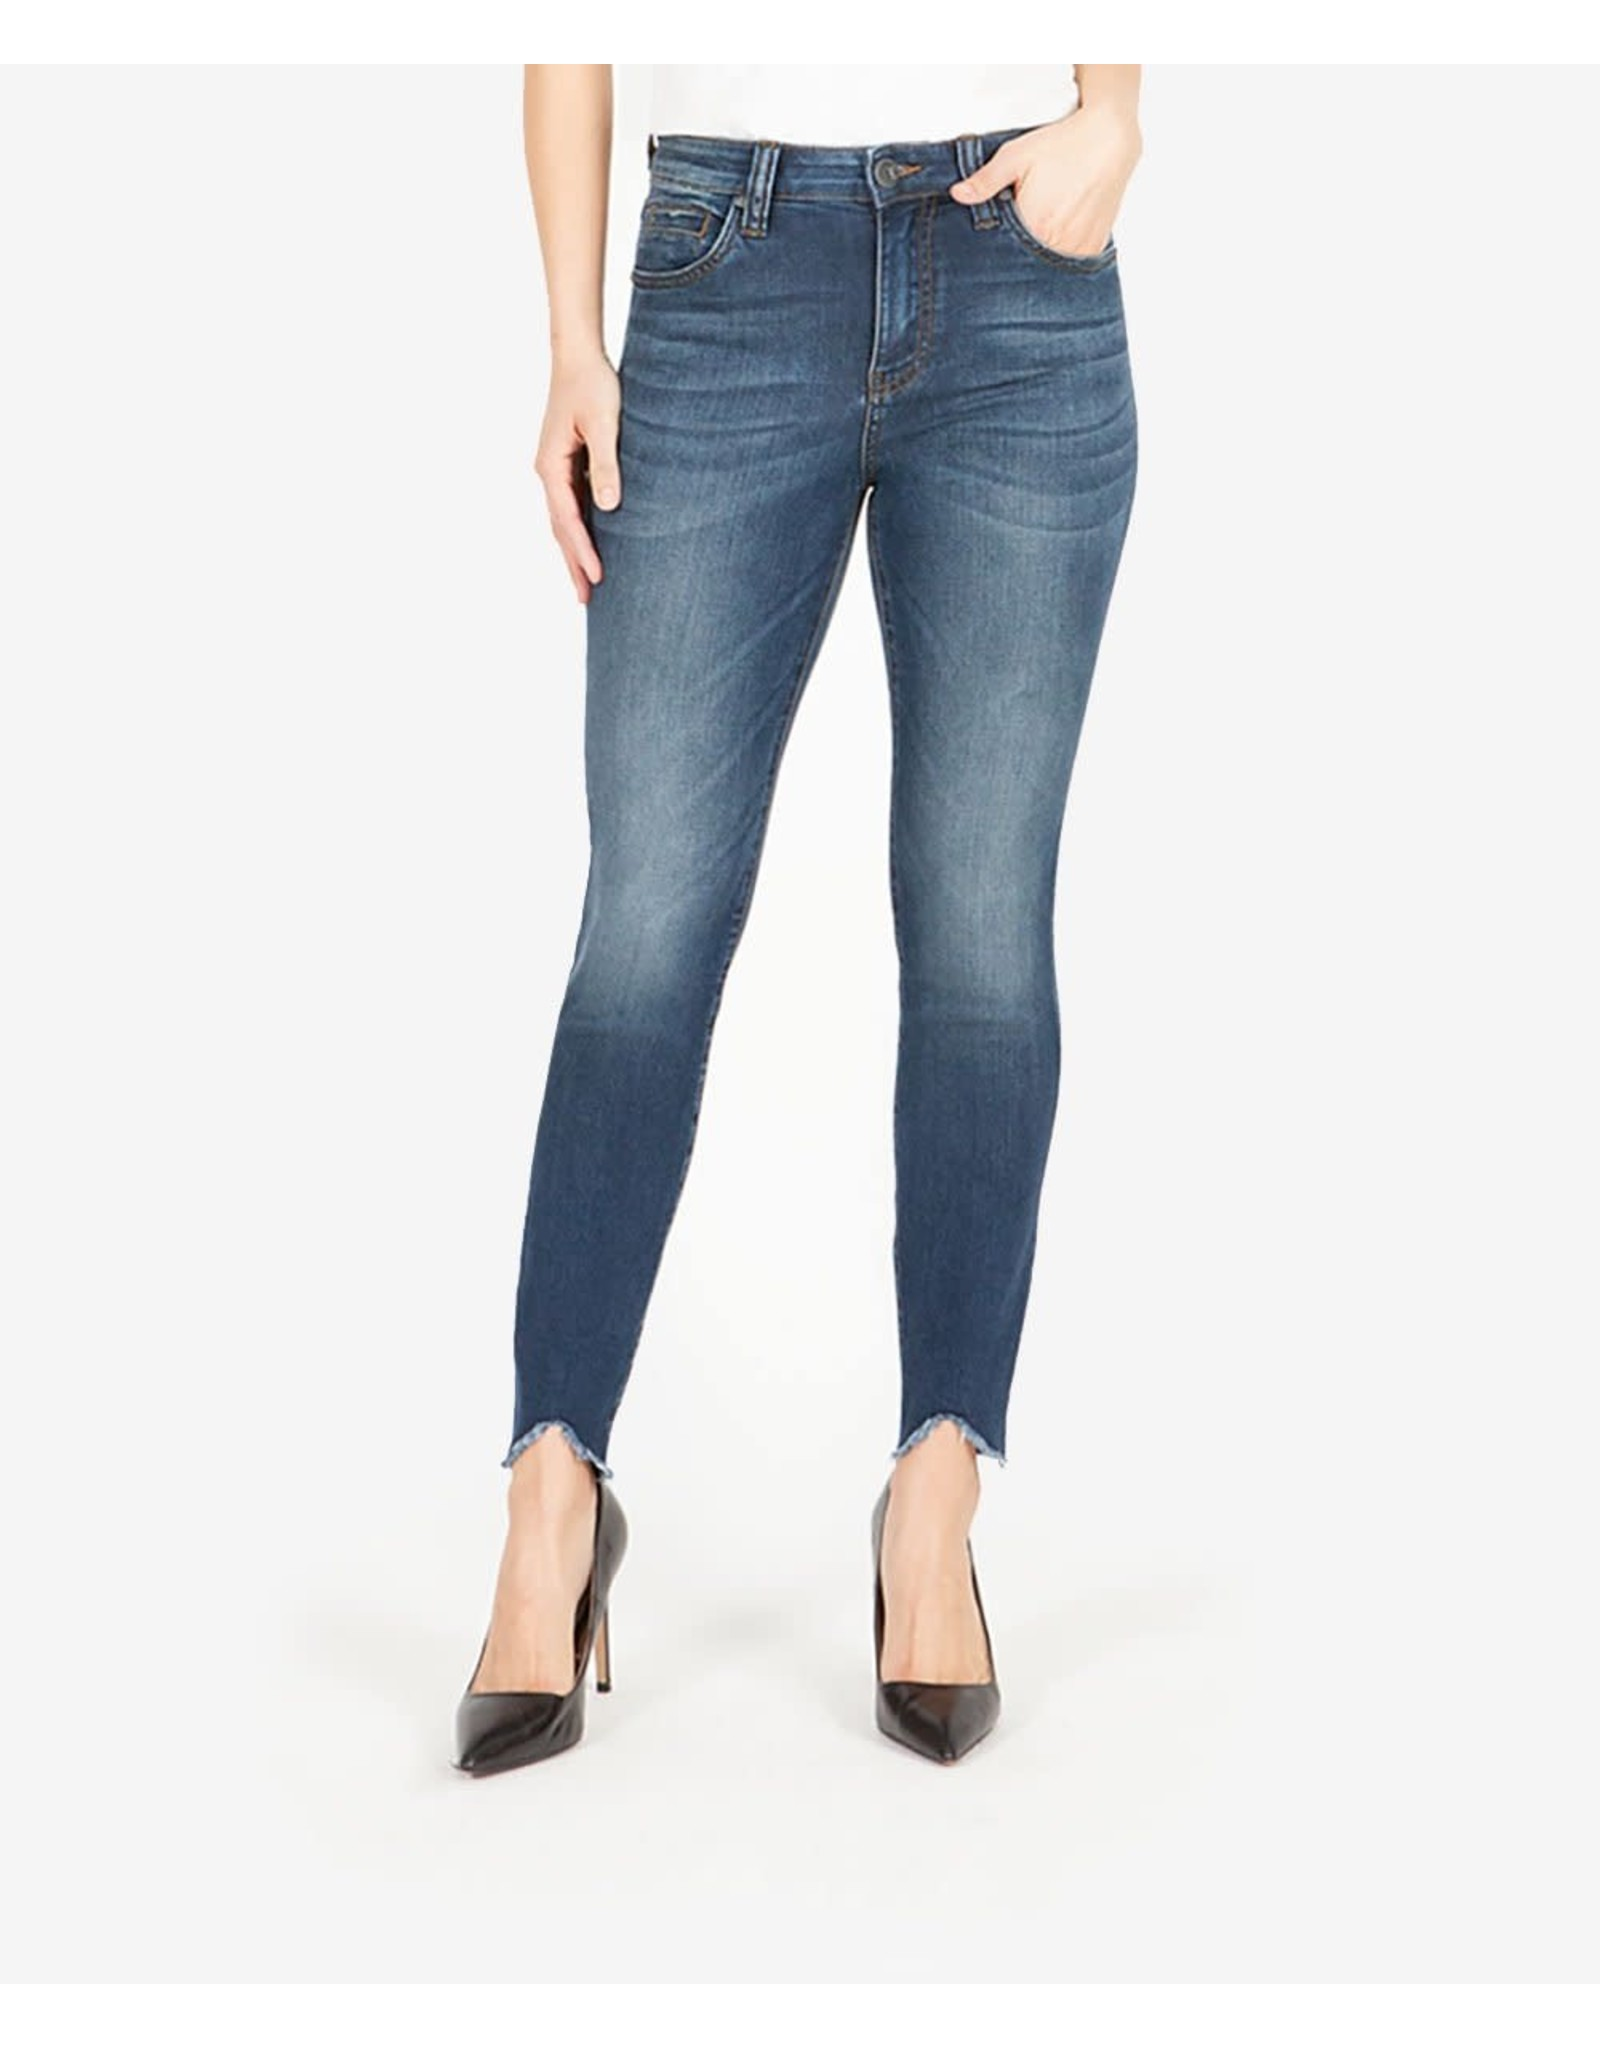 CONNIE SLIM HIGH RISE ANKLE SKINNY - BEHAVE WASH -